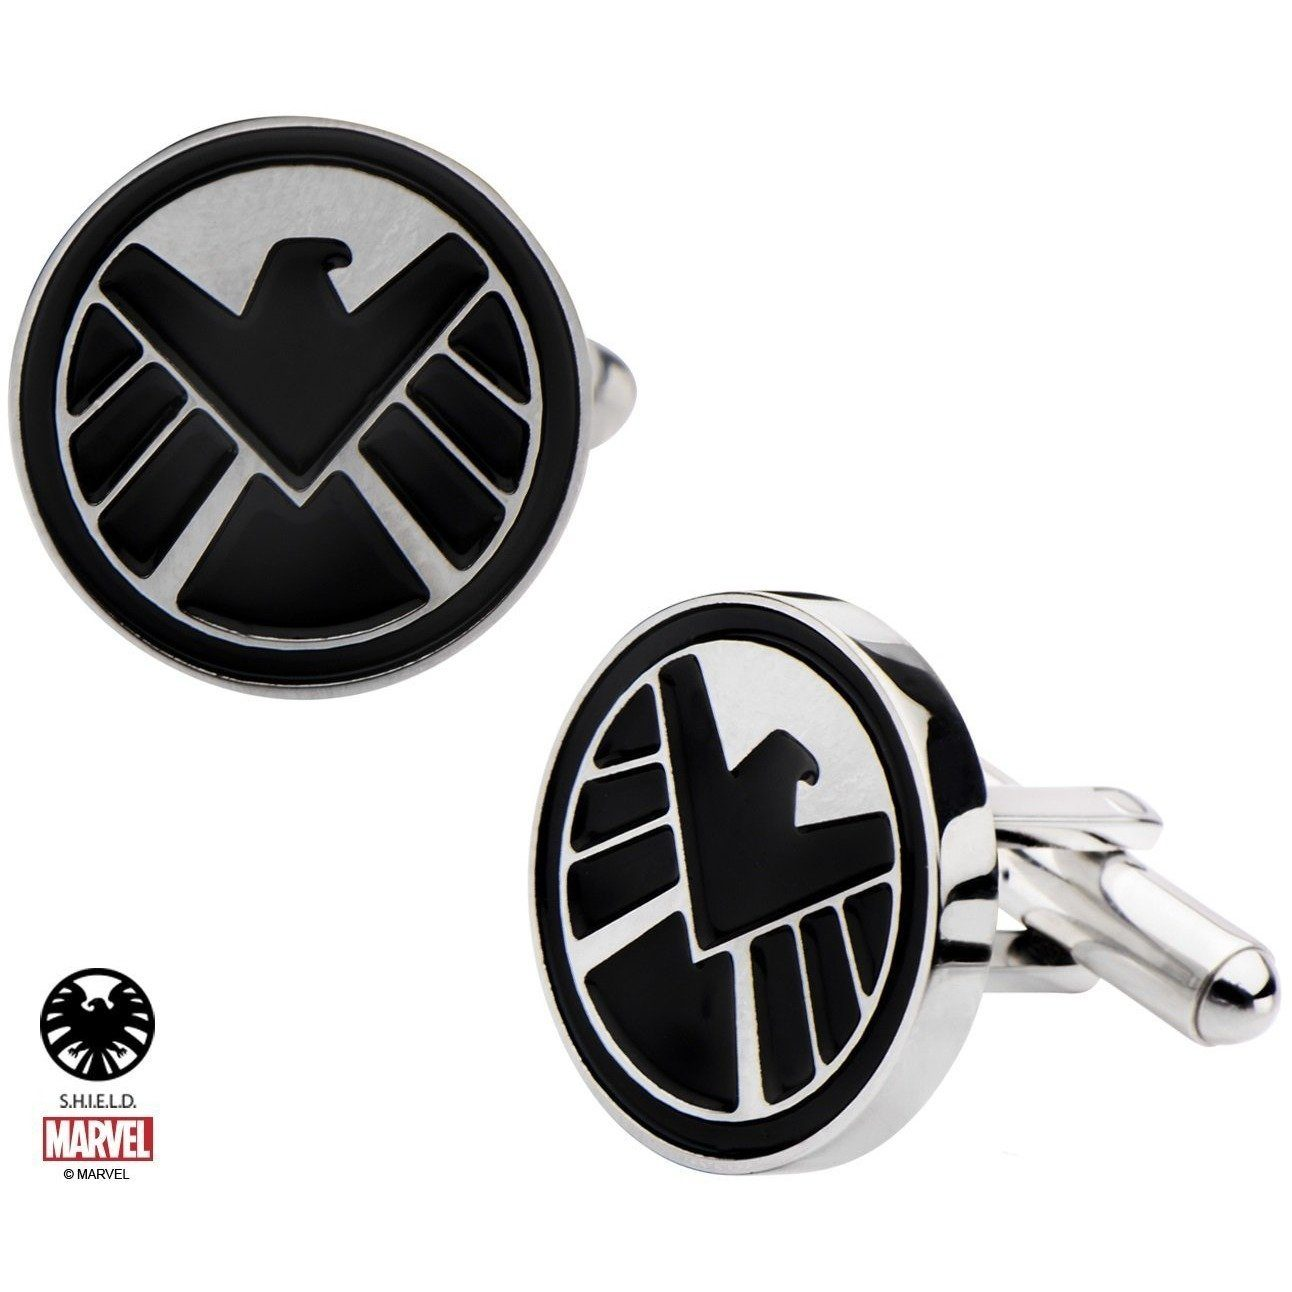 Marvel S.H.I.E.L.D Cufflinks in Stainless Steel, Novelty Cufflinks, Cuffed.com.au, CL5856, $65.00